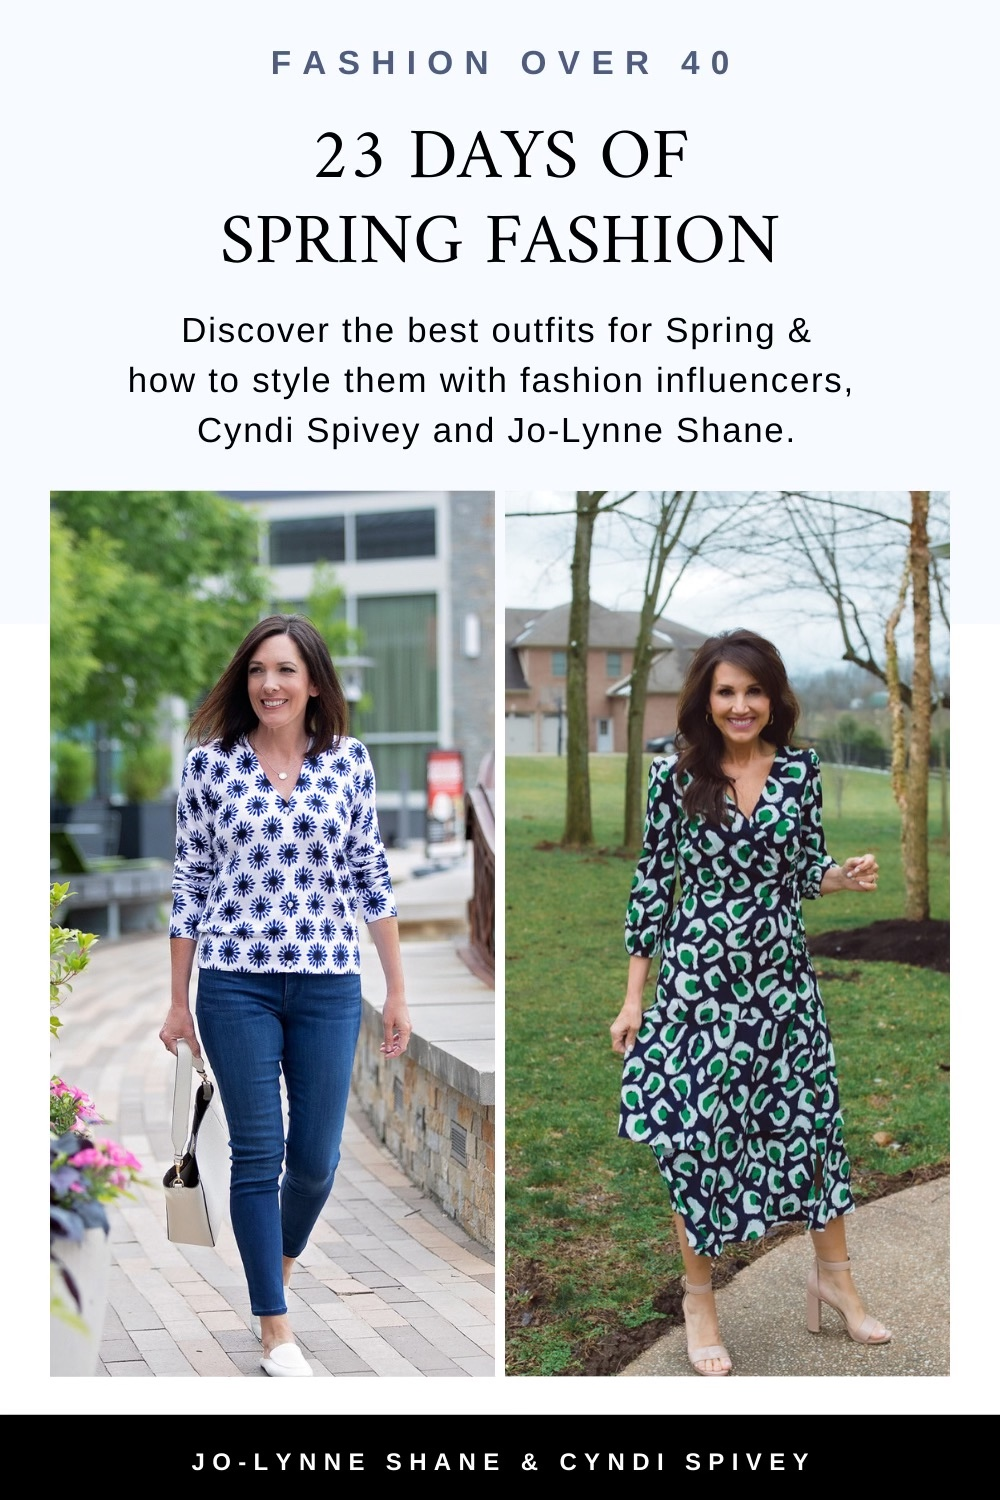 23 Days of Spring Fashion